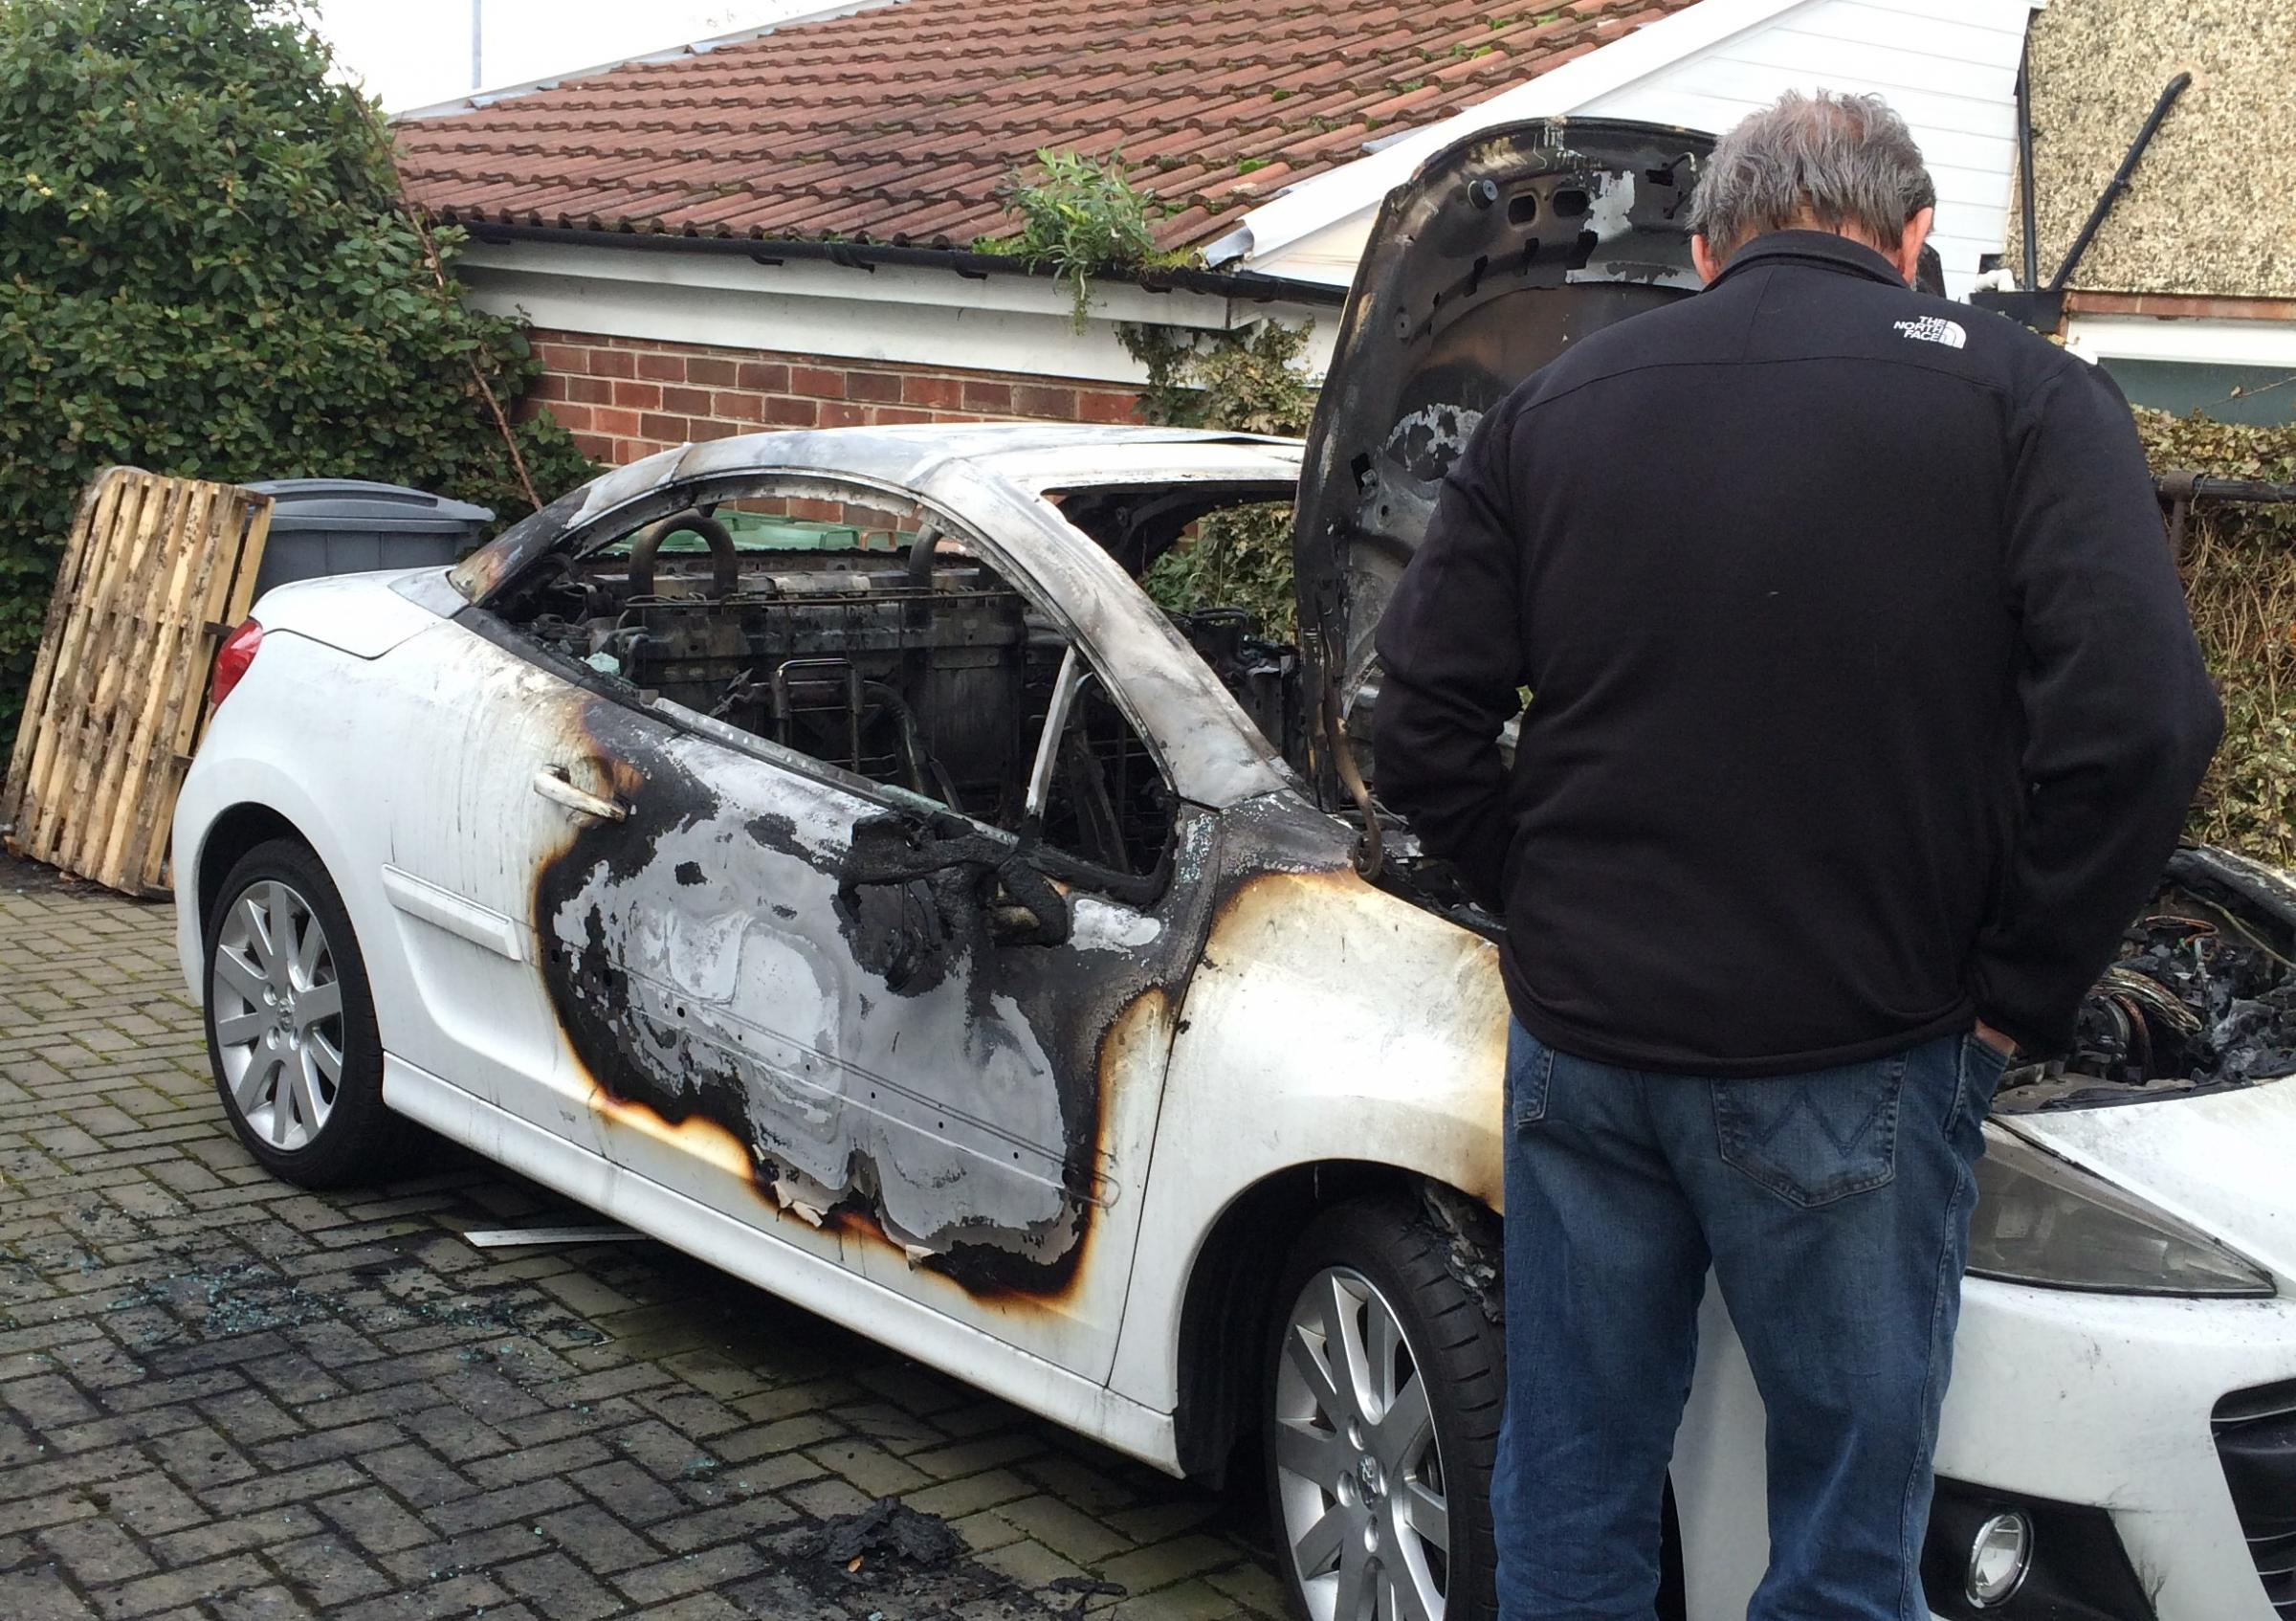 EXCLUSIVE: Barking dogs saved Wirral man's life as arsonists torched car on his drive